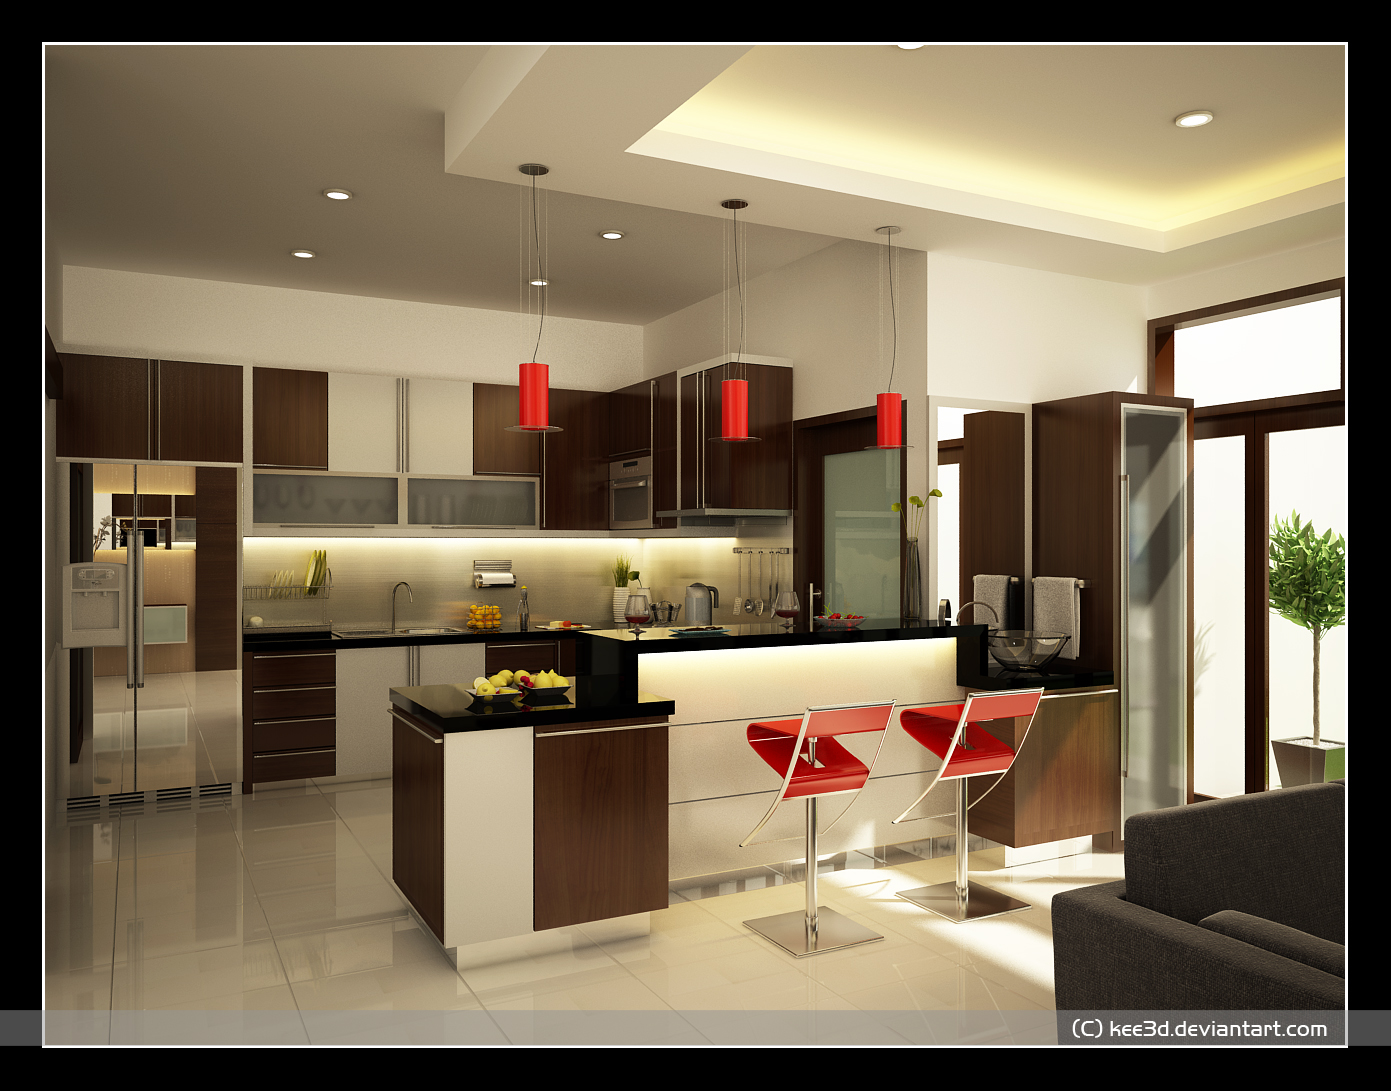 Kitchen design ideas for Home improvement ideas for kitchen